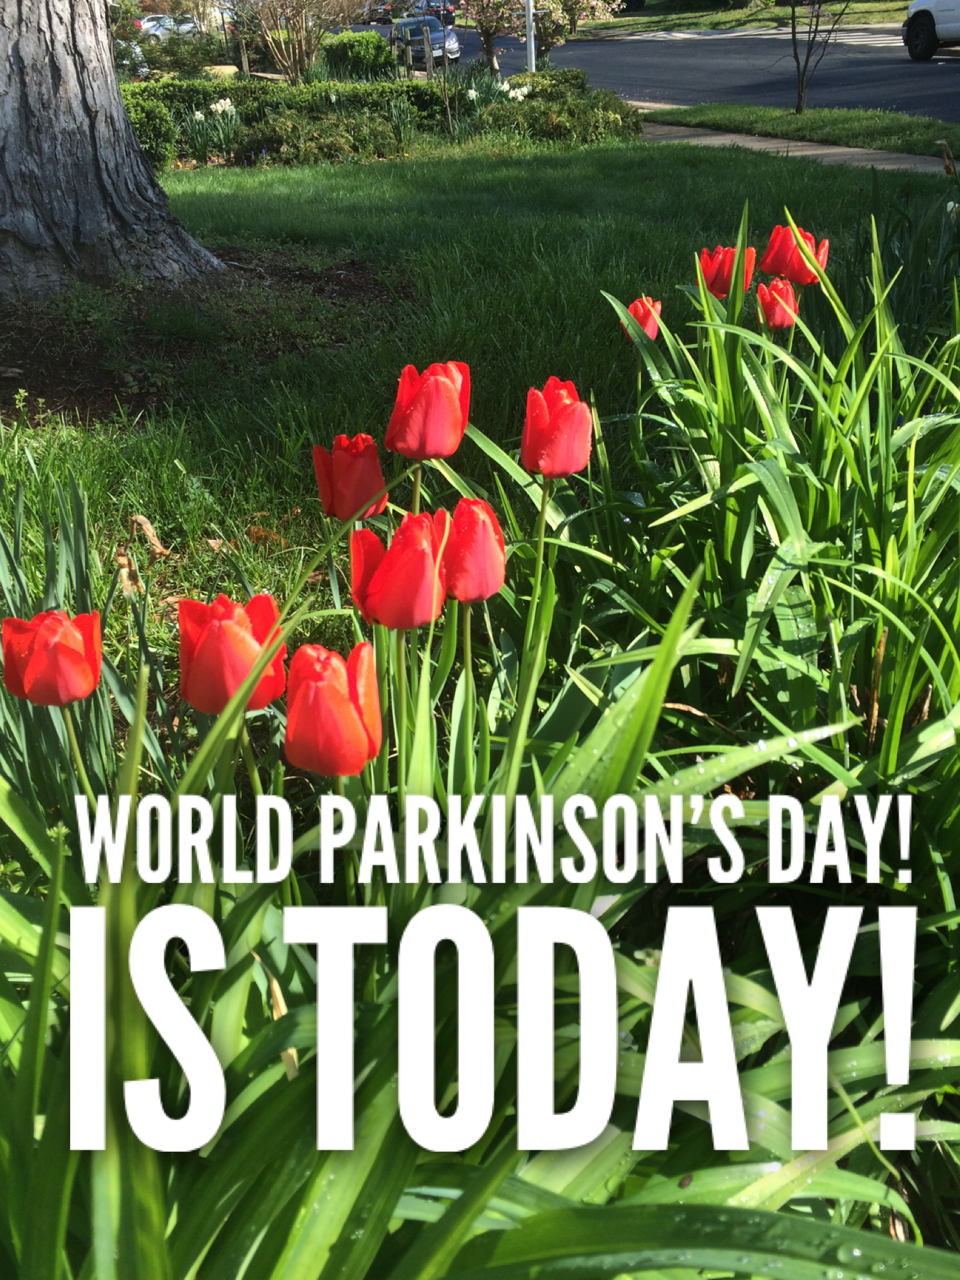 World Parkinson's Day 2021 & Raising Awareness